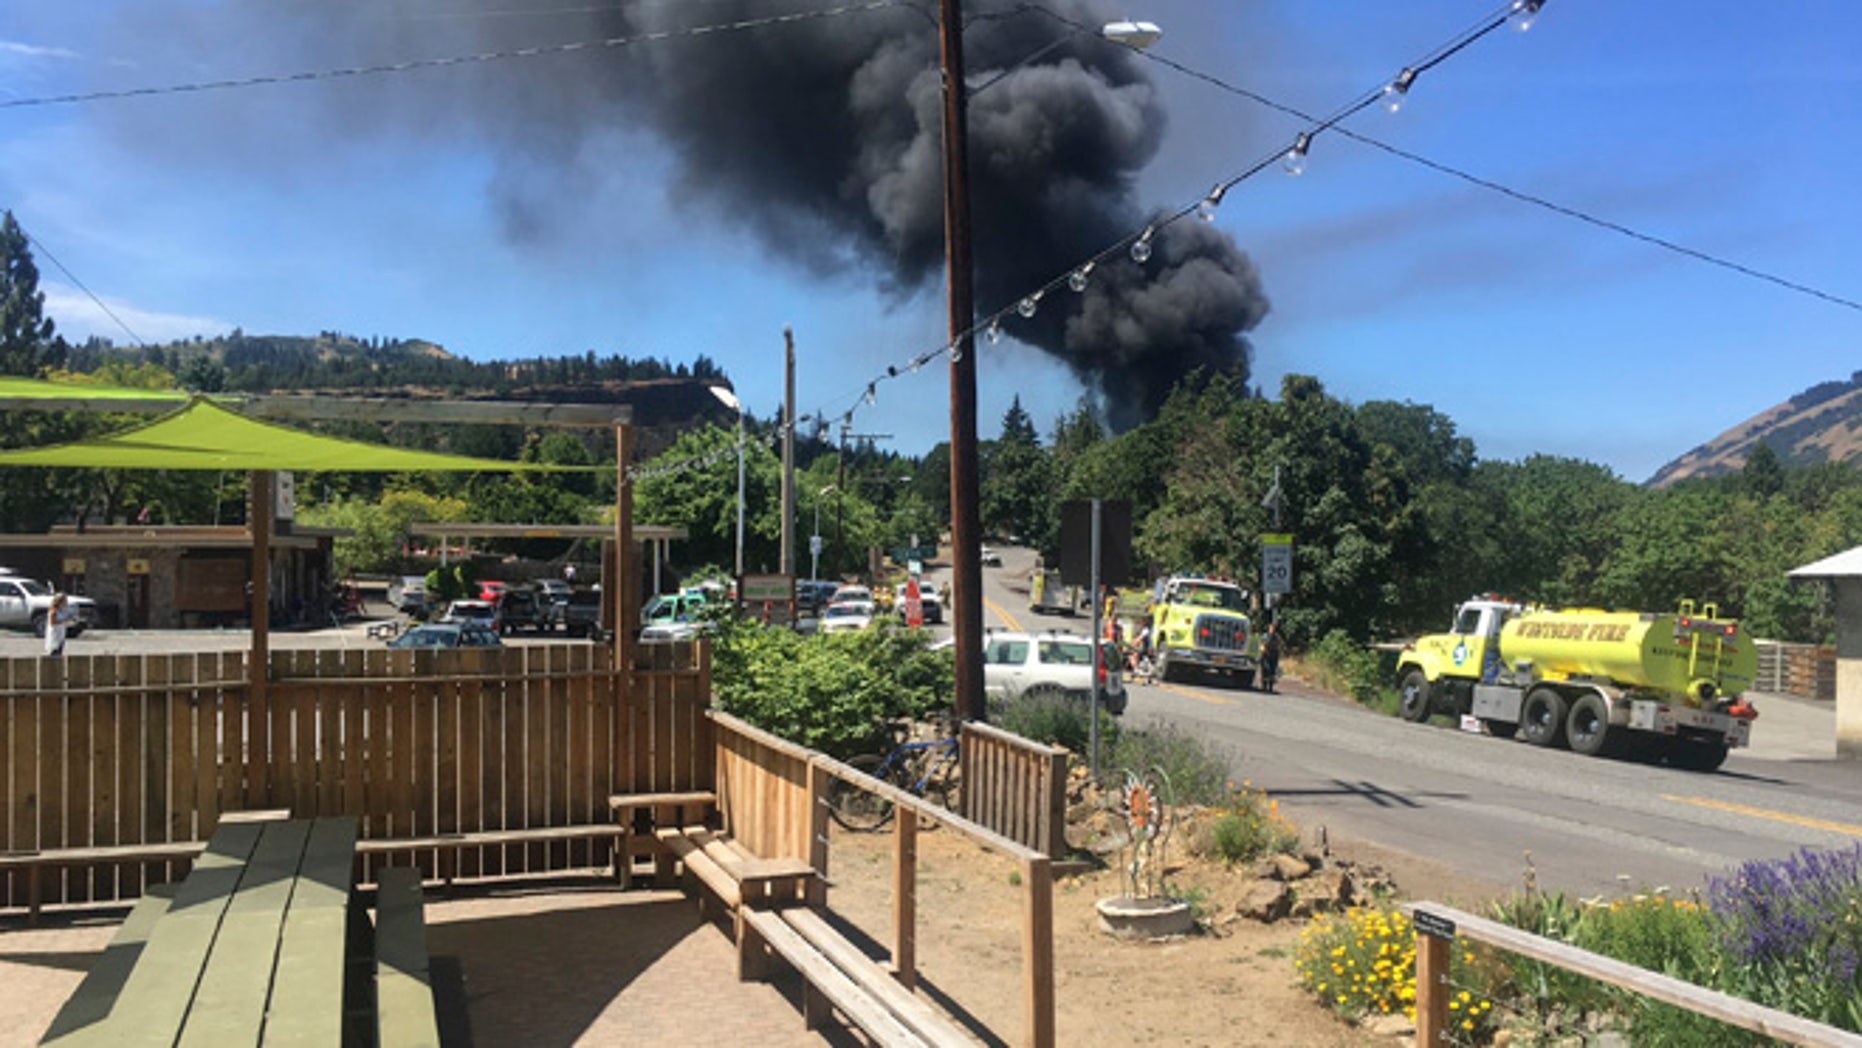 In this photo provided by Silas Bleakley, a train towing cars full of oil sends up a plume of smoke after derailing Friday, June 3, 2016, near Mosier, Ore. The accident happened just after noon about 70 miles east of Portland. It involved eight cars filled with oil, and one was burning. Highway 84 was closed for a 23-mile stretch between The Dalles and Mosier and the radius for evacuations was a half-mile. (Silas Bleakley via AP)